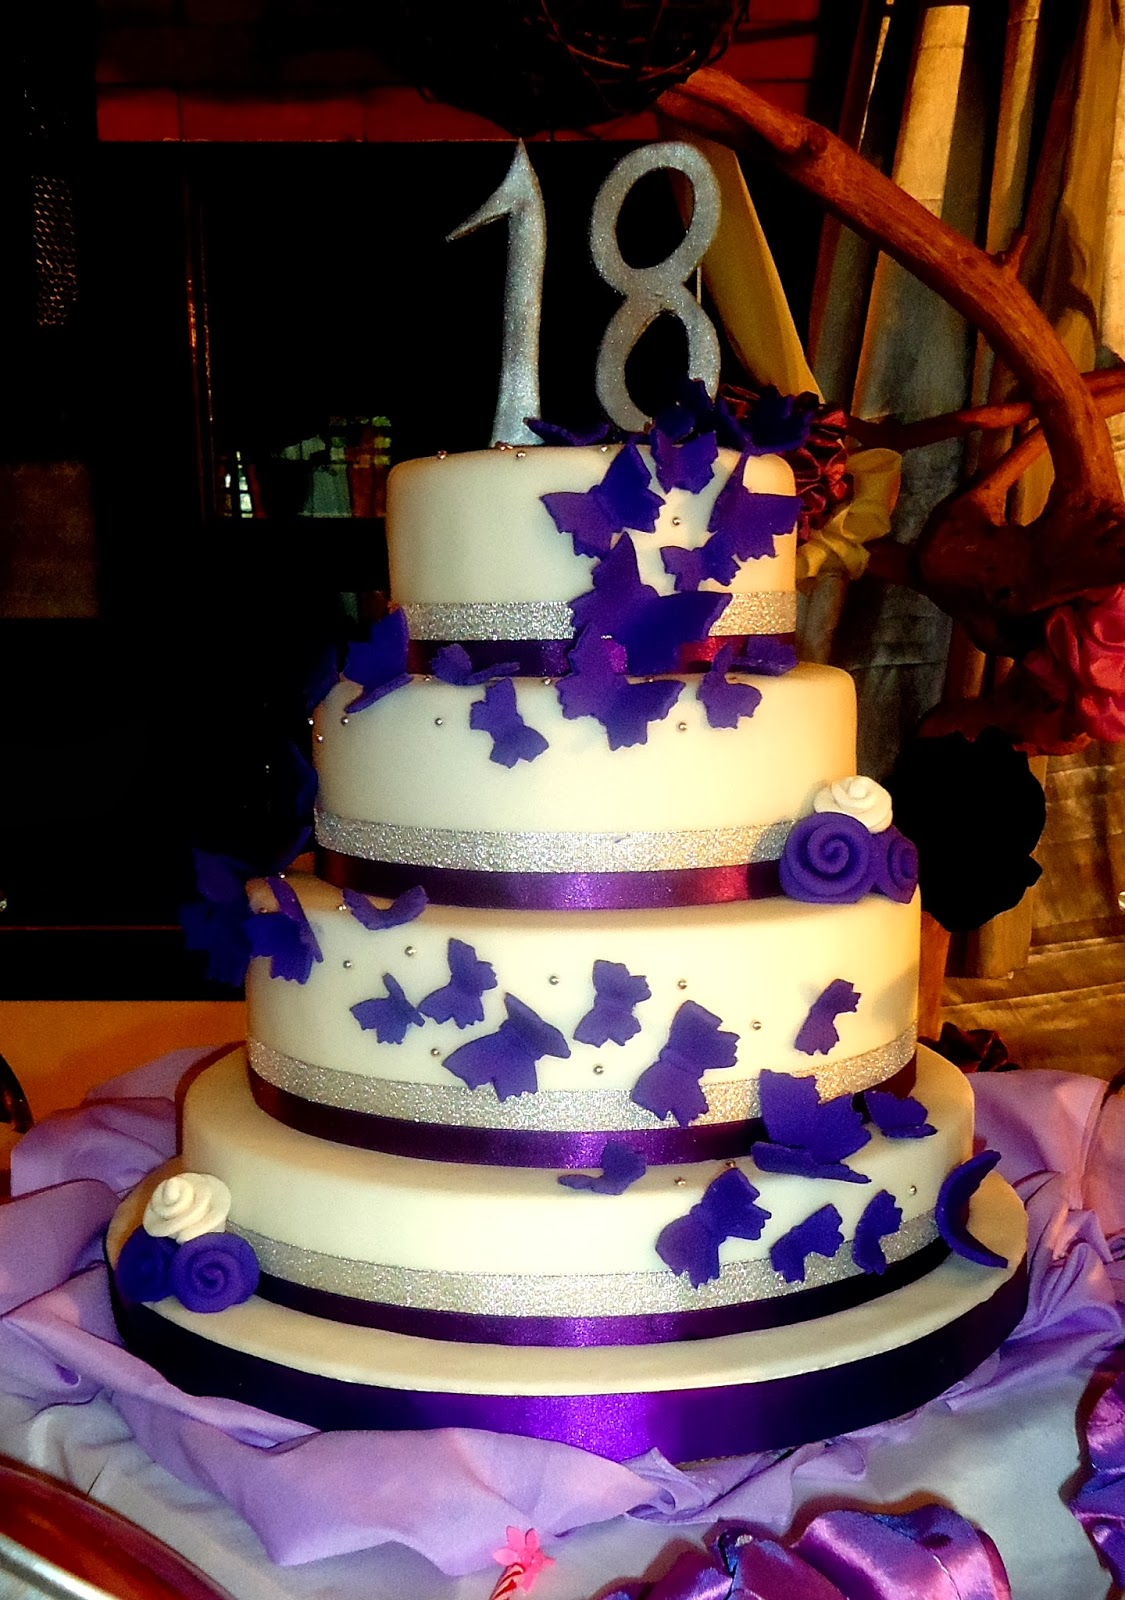 Cake Design For Debut : Franco s Cakes and Pastries: Debut Cakes